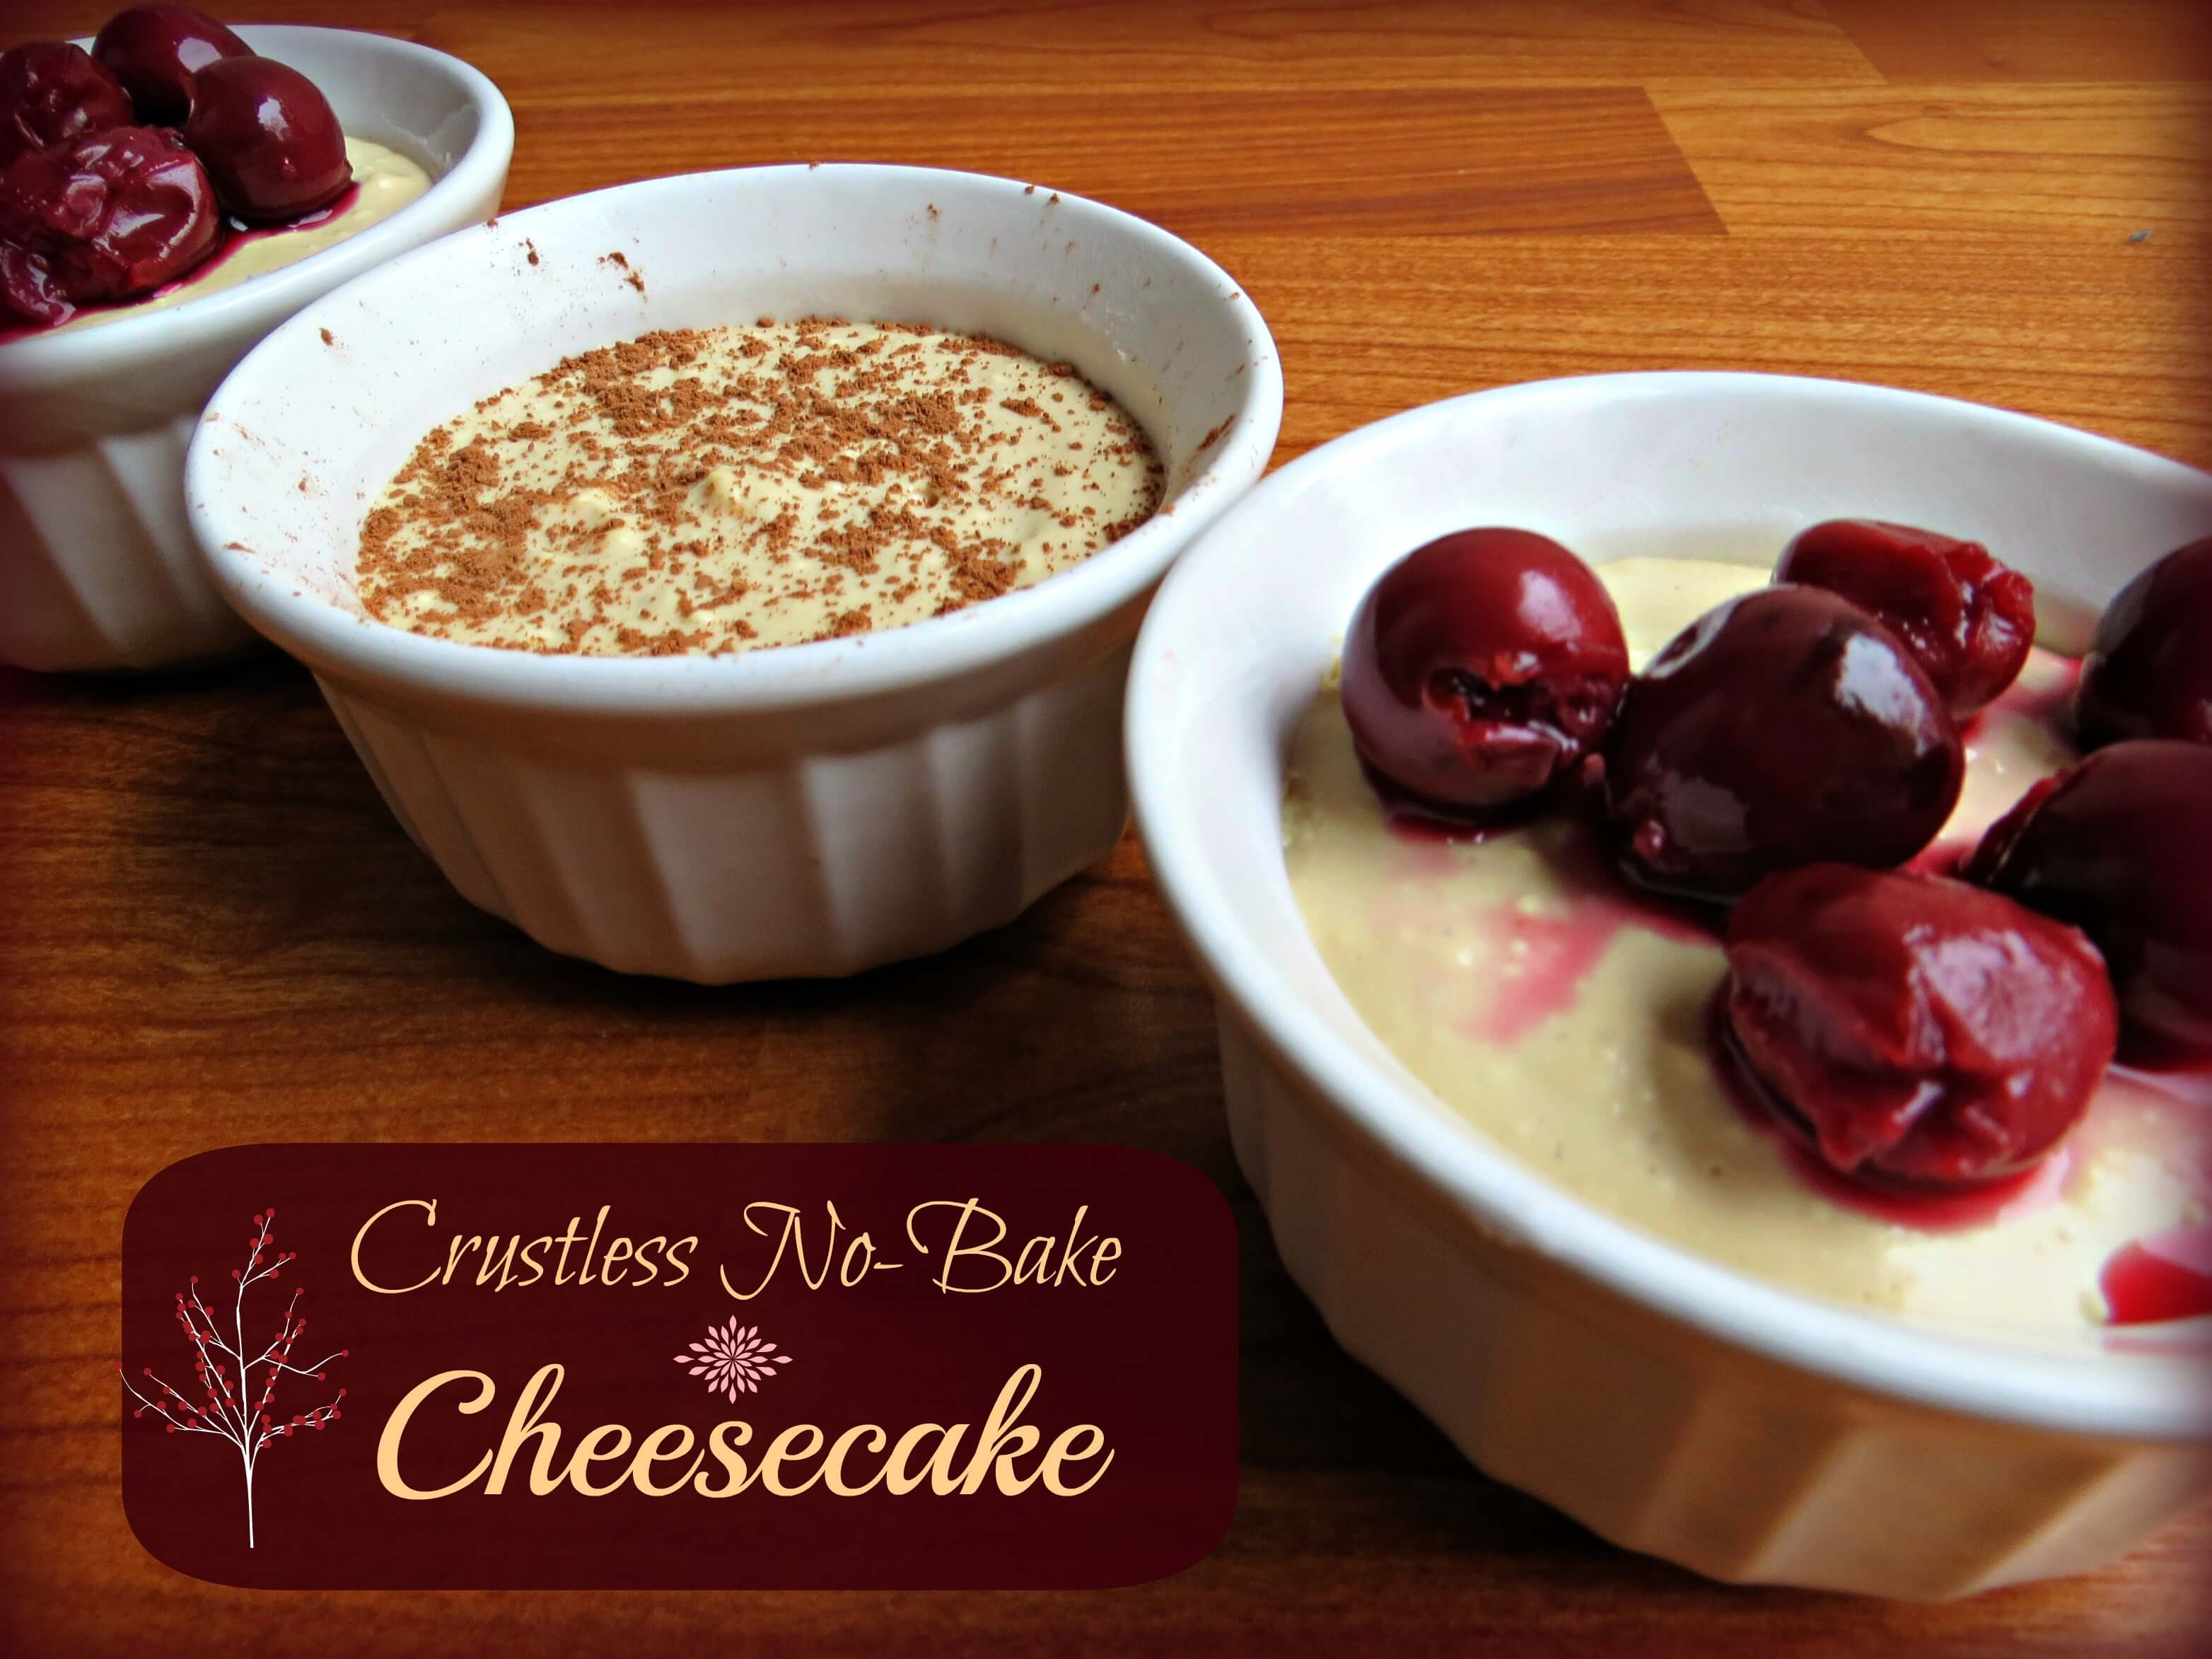 Crustless No Bake Cheesecake from The Coconut Mama